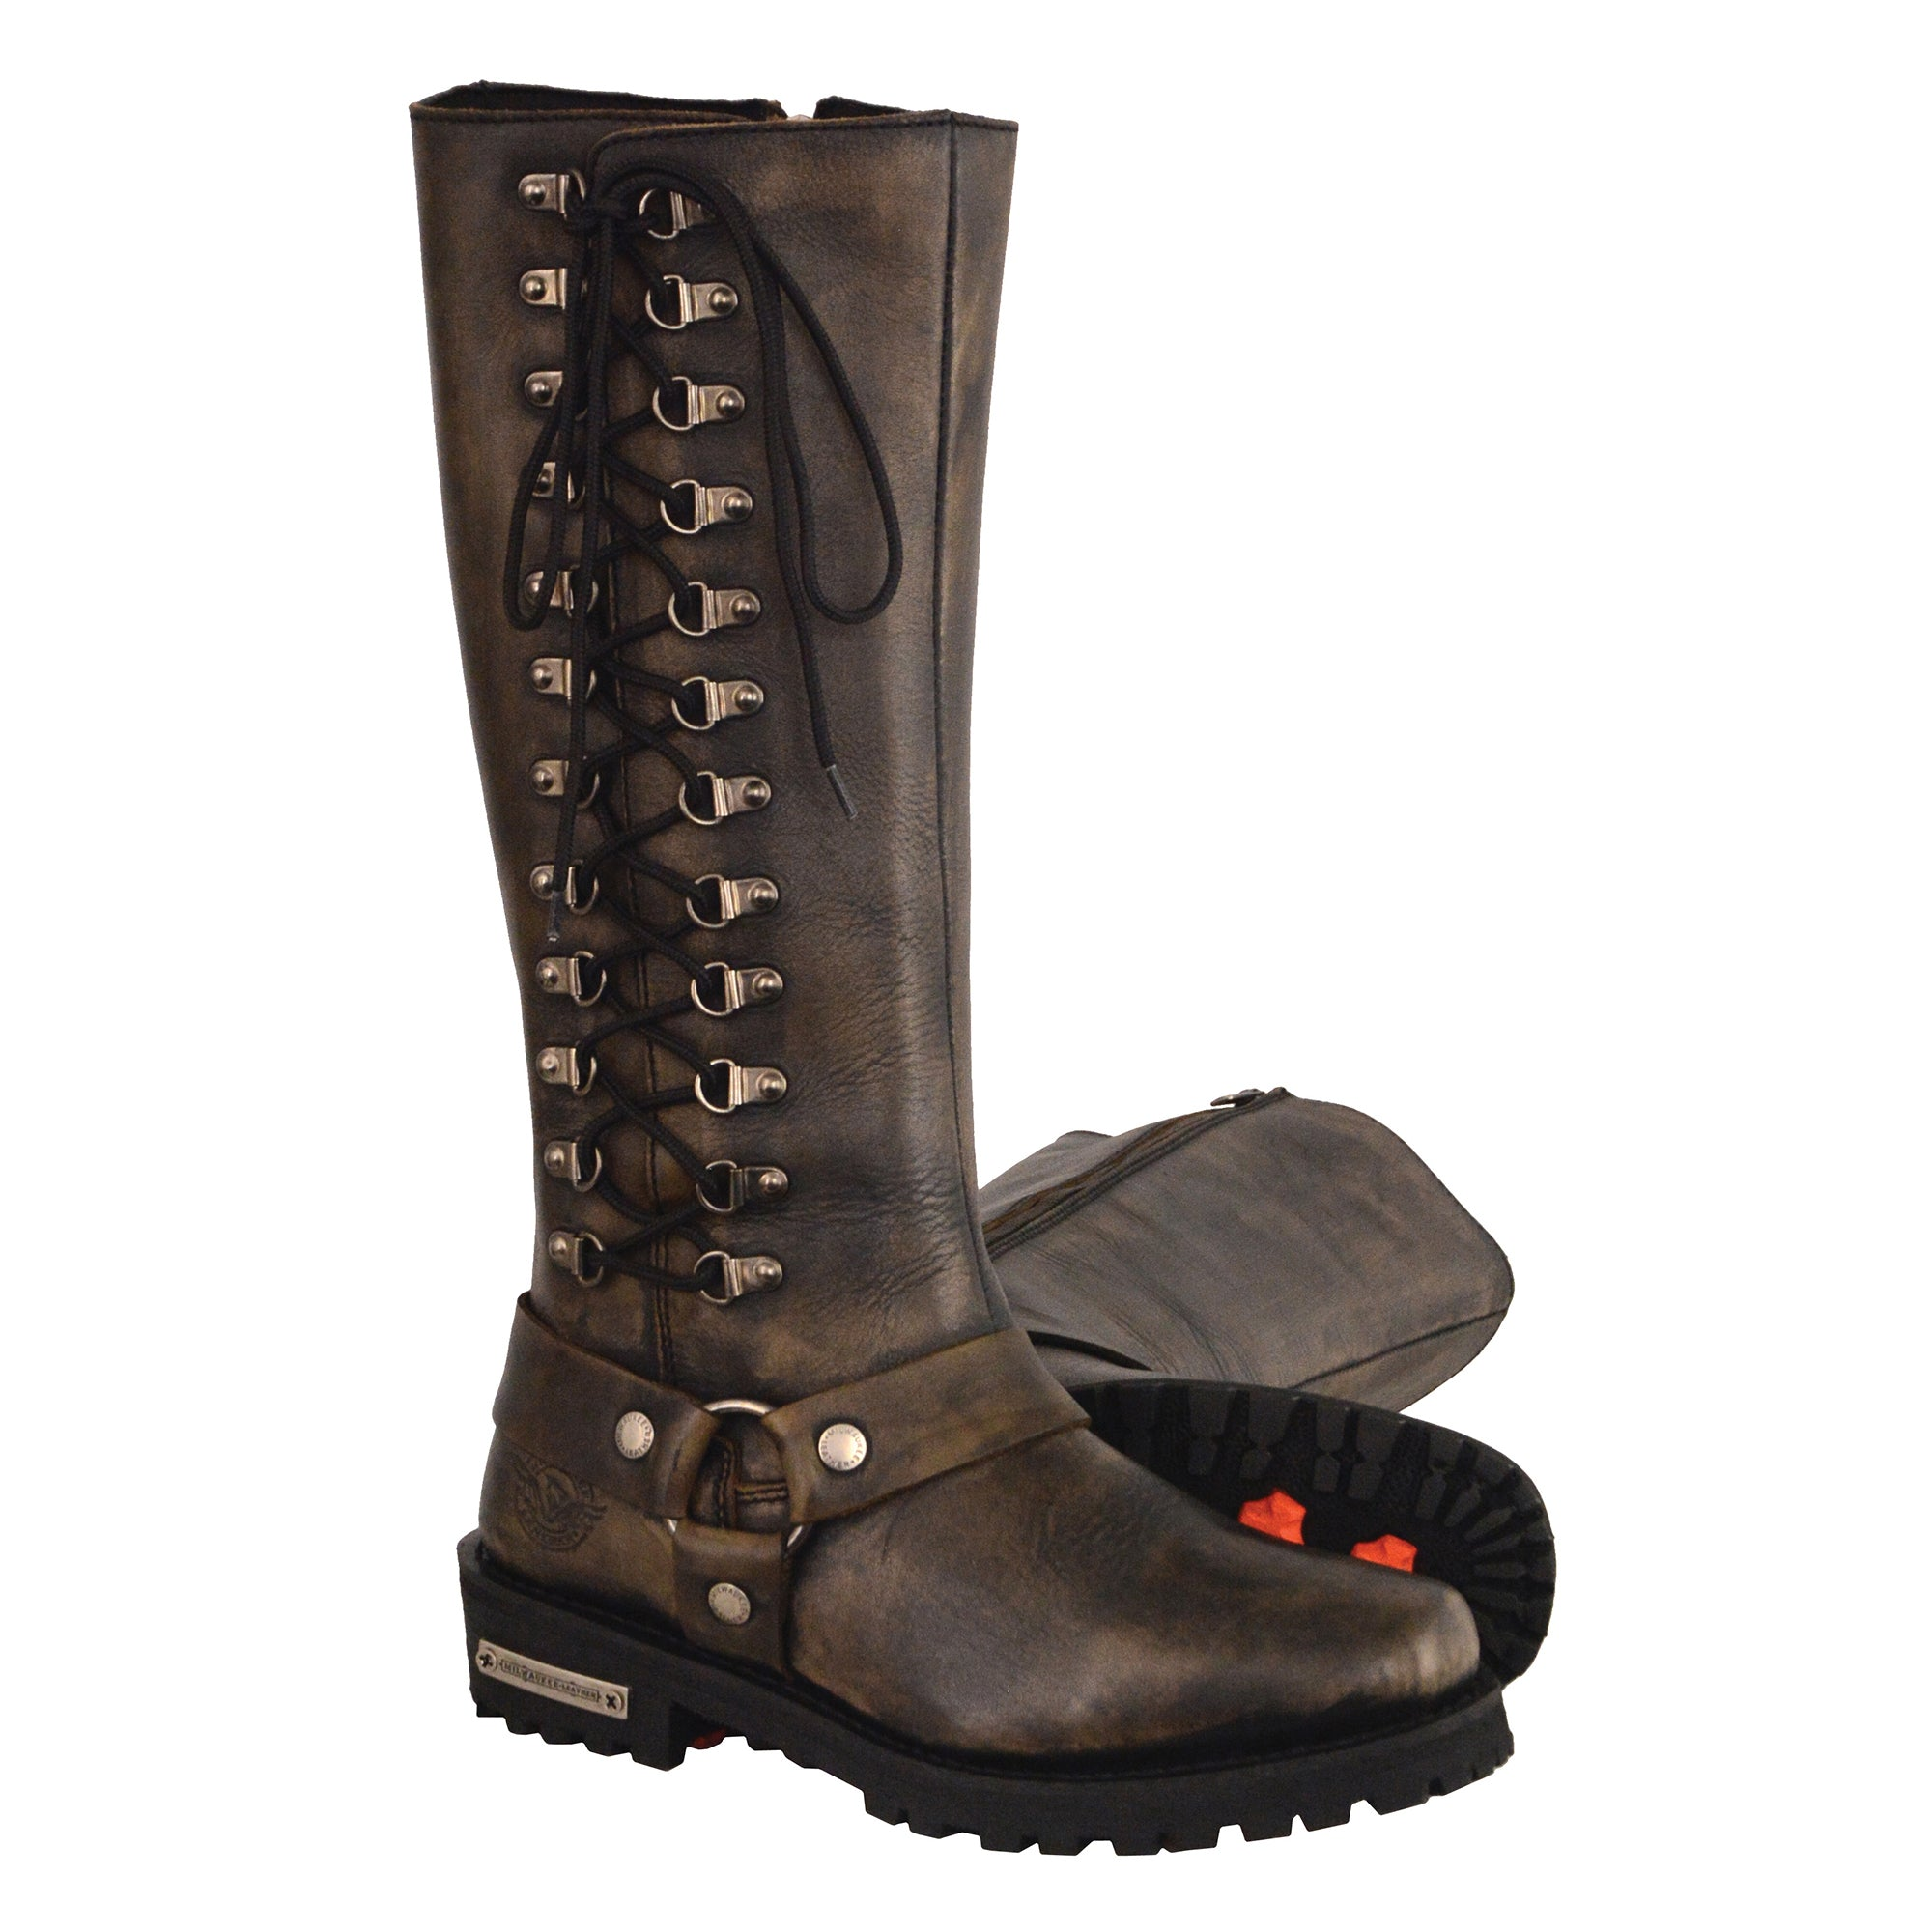 6749e9debdc Milwaukee Leather Boots MBL9368 Ladies Distressed Brown 14 Inch ...